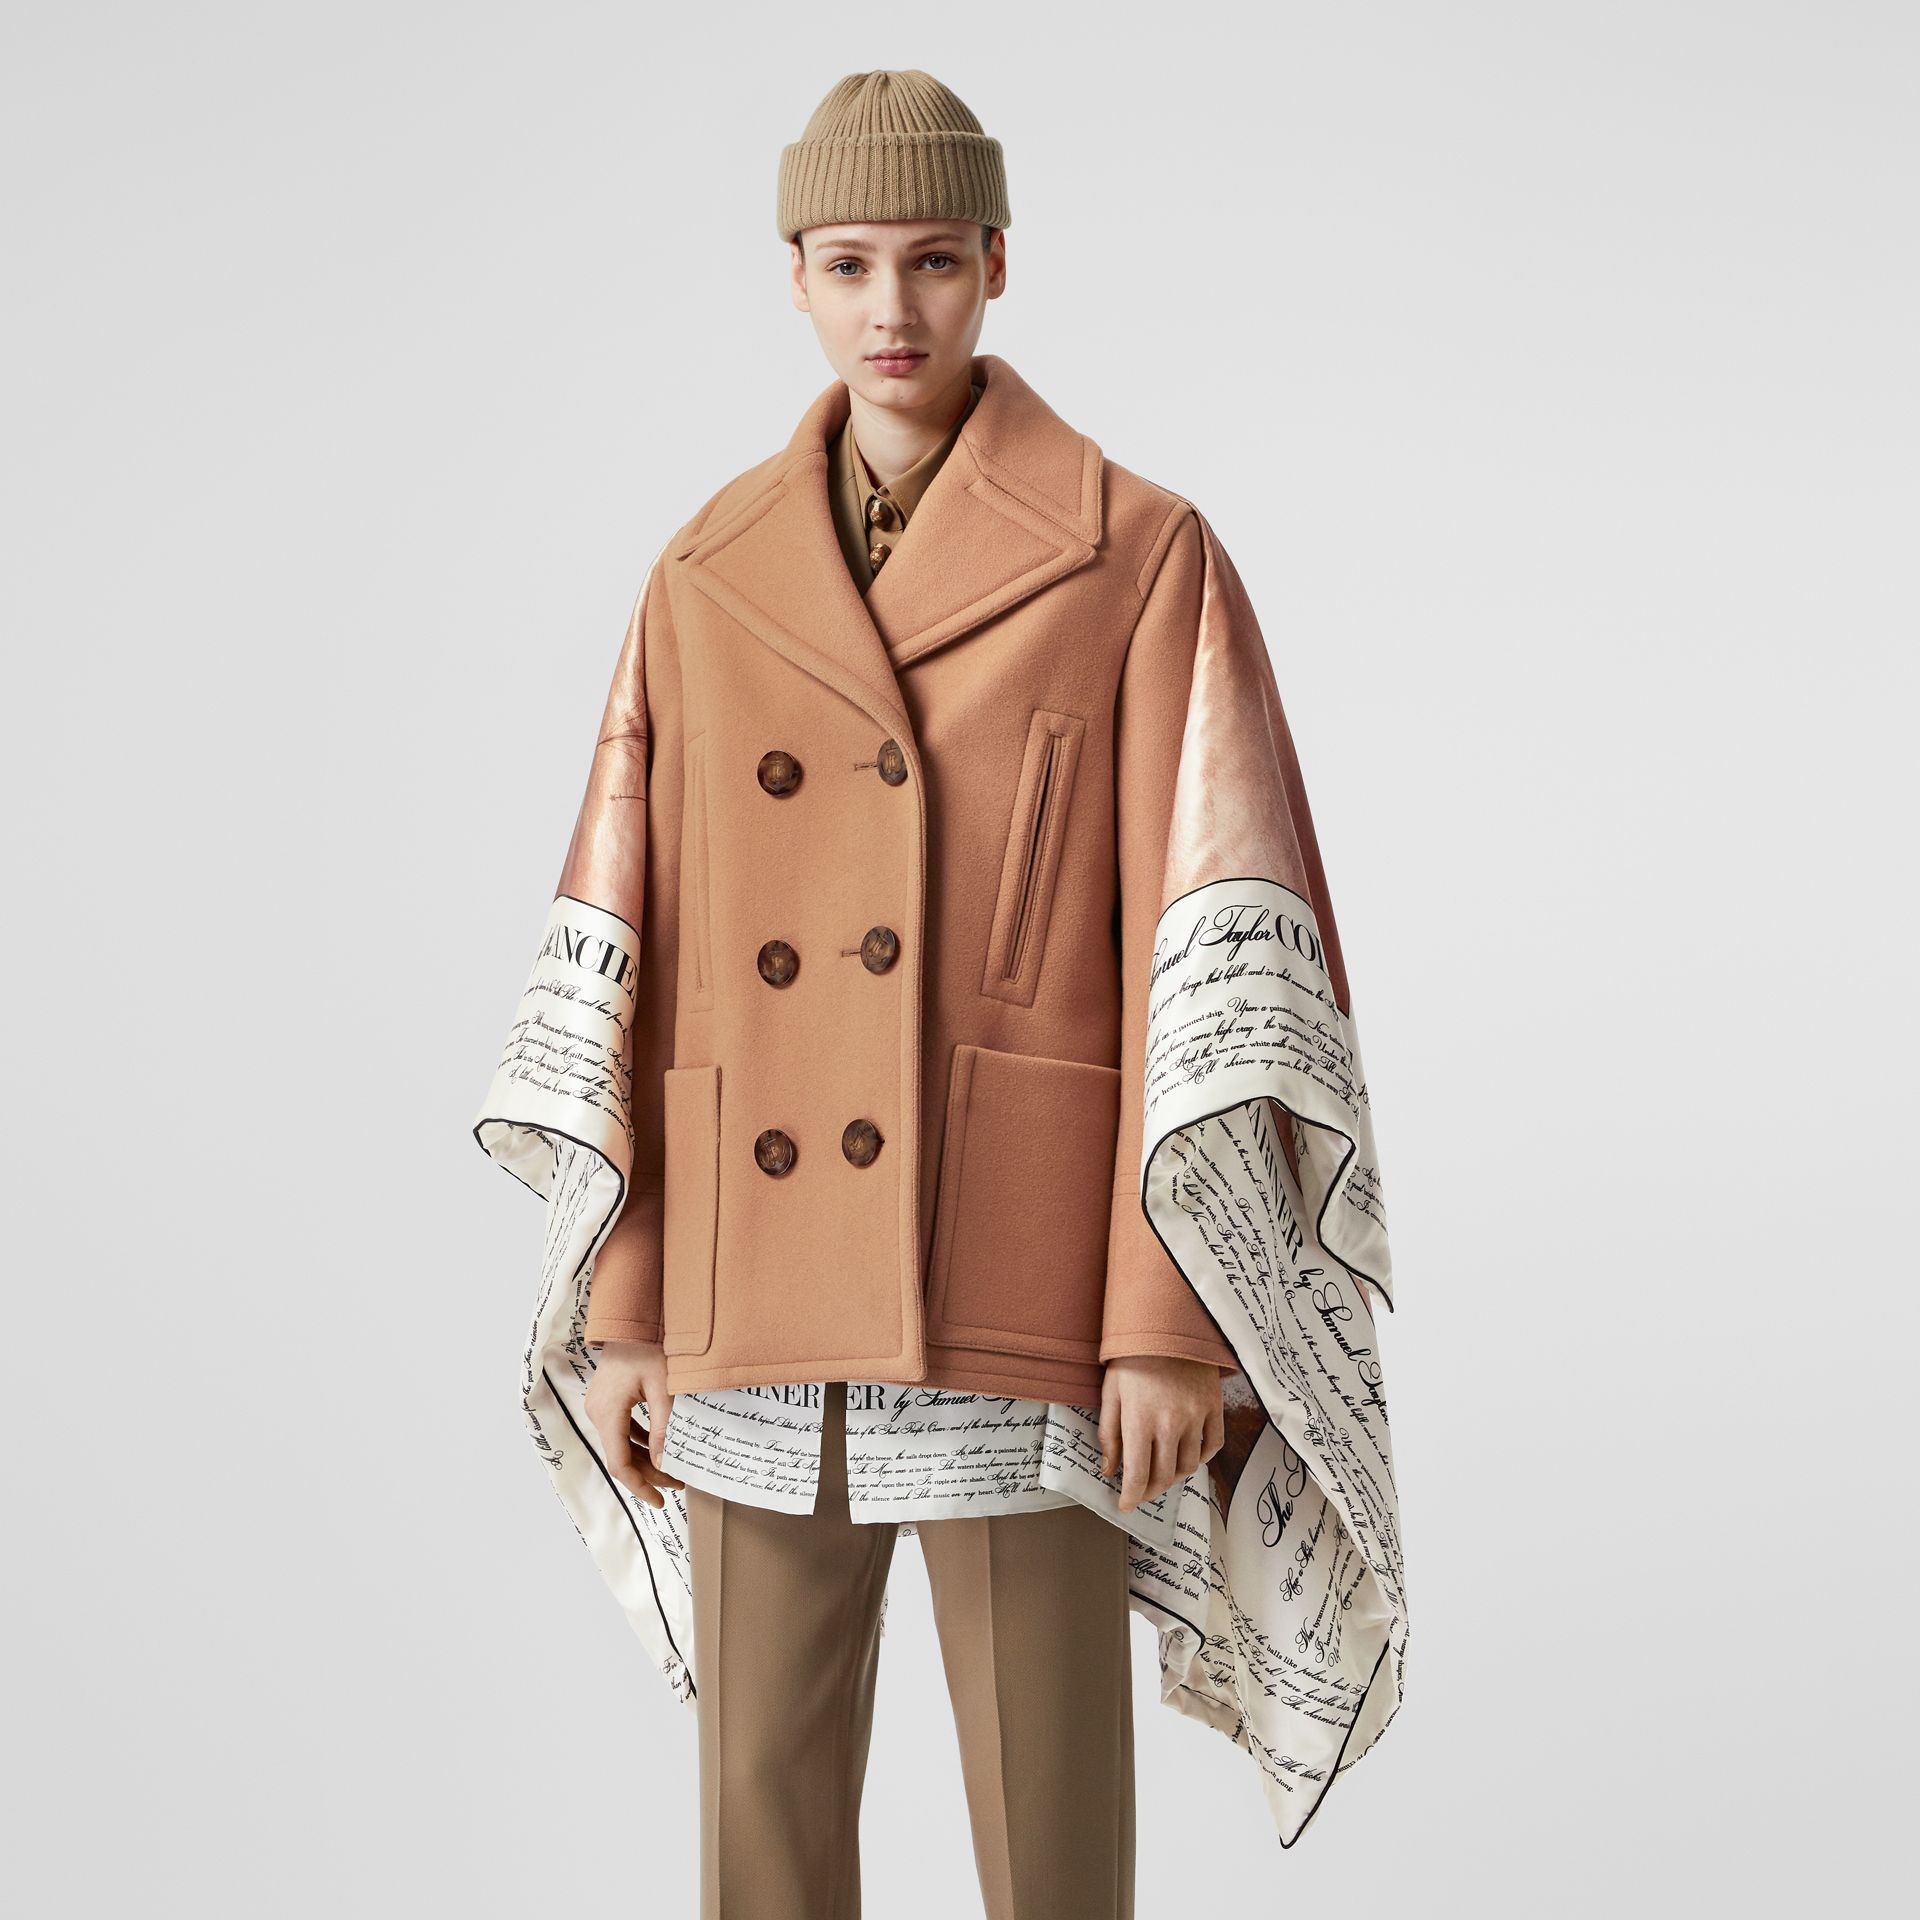 Mariner Print Blanket Detail Technical Wool Pea Coat in Warm Camel - Women | Burberry United Kingdom - gallery image 5